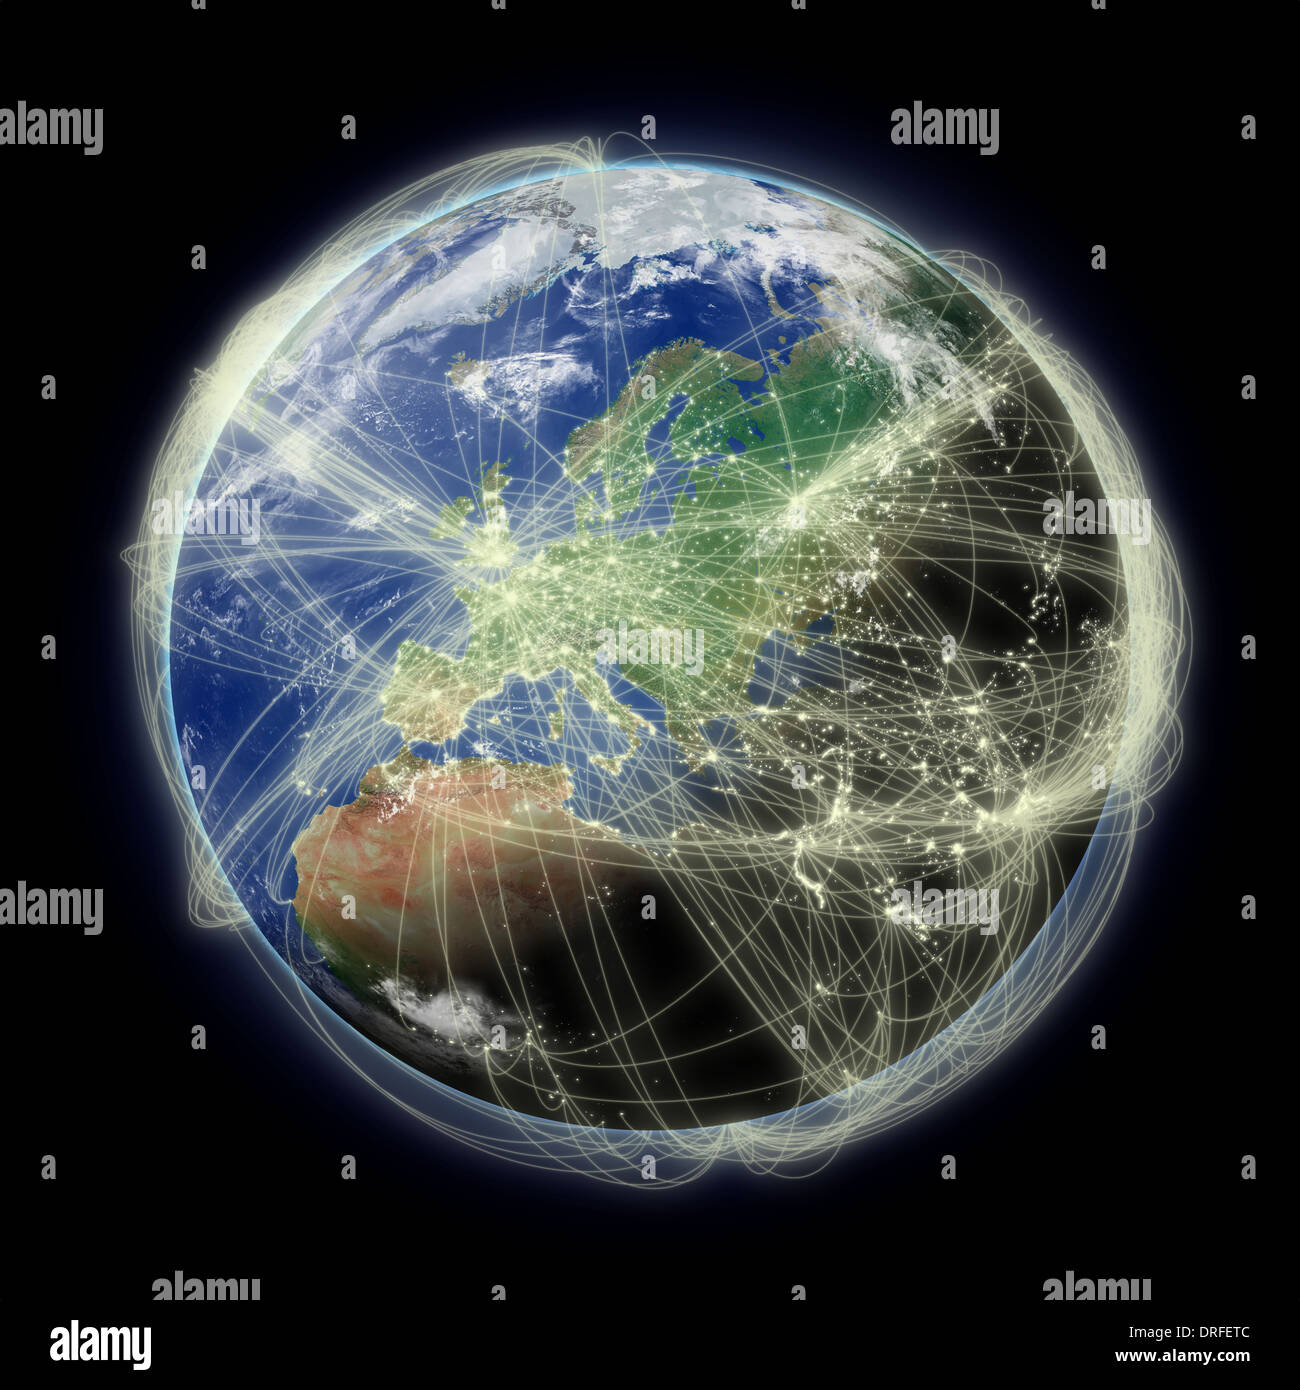 Network of flight paths over Europe on blue planet Earth isolated on black background. Highly detailed planet surface. Elements of this image furnished by NASA. - Stock Image